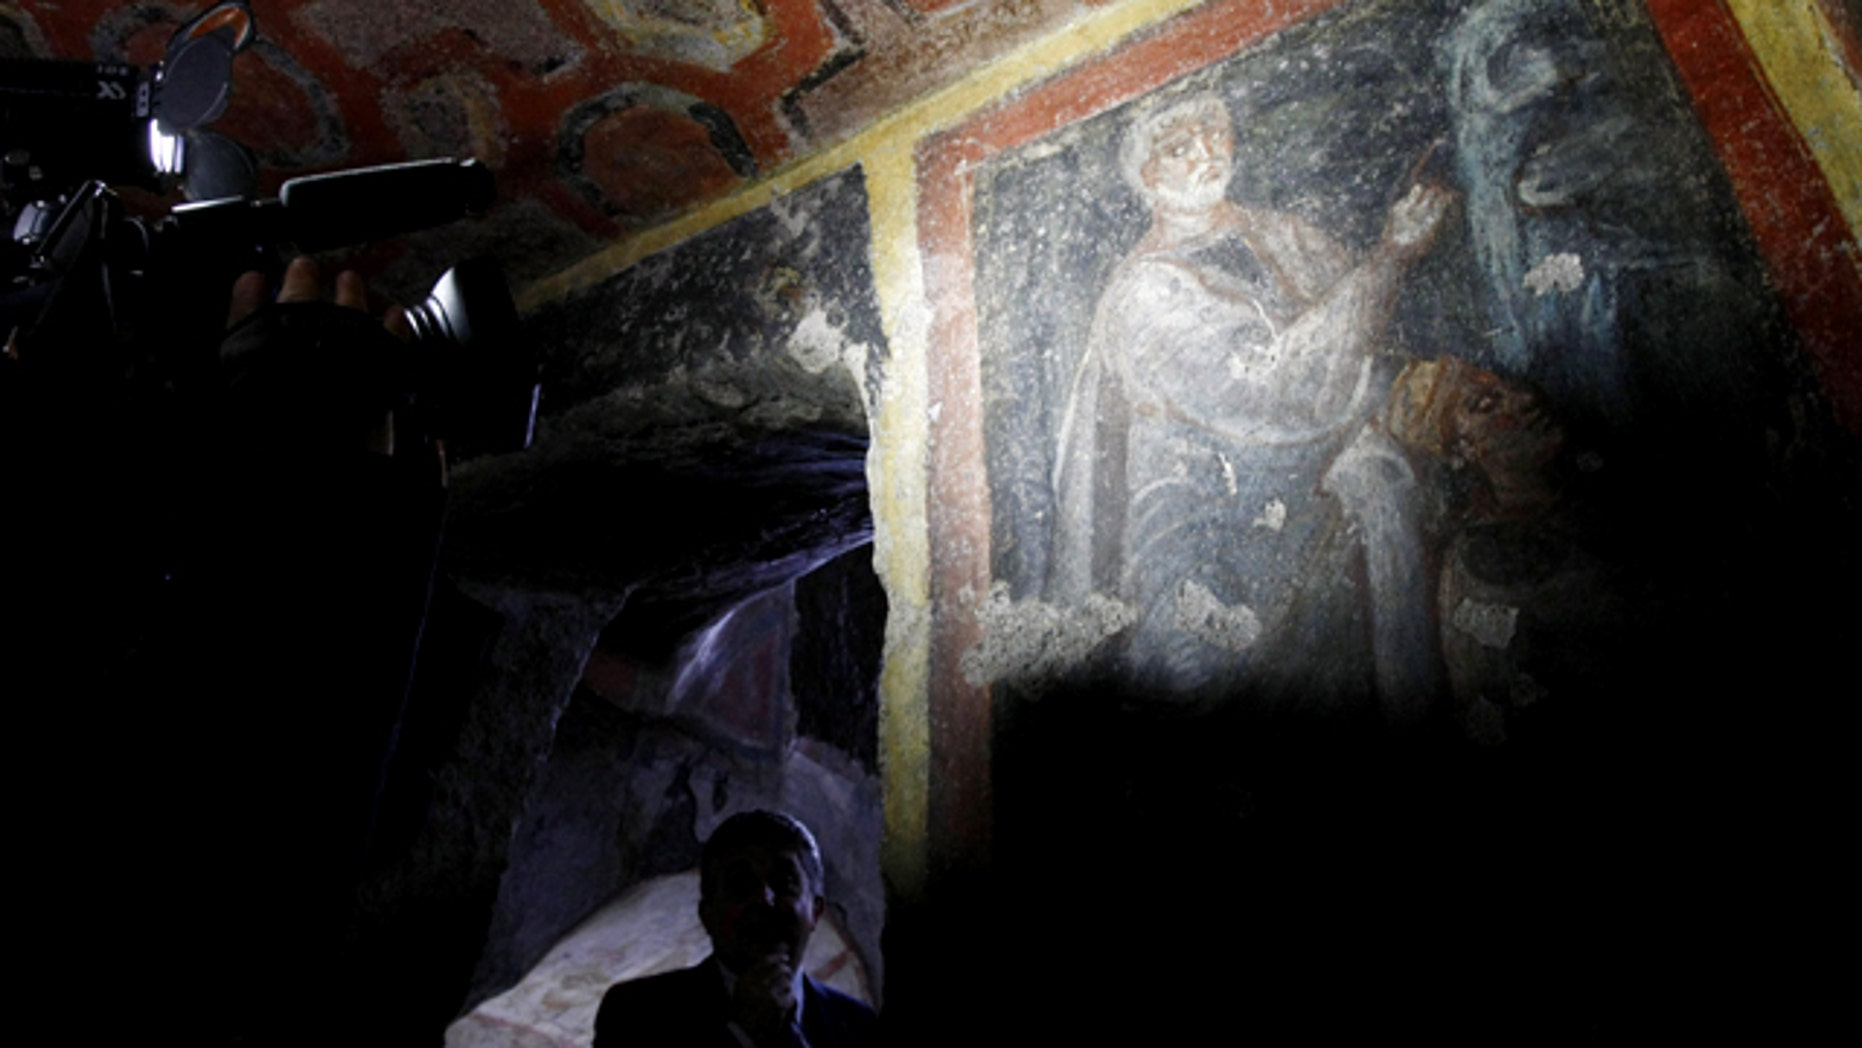 June 22: A cameraman films a painting discovered with the earliest known icons of the Apostles Peter and Paul in a catacomb located under a modern office building in Rome.